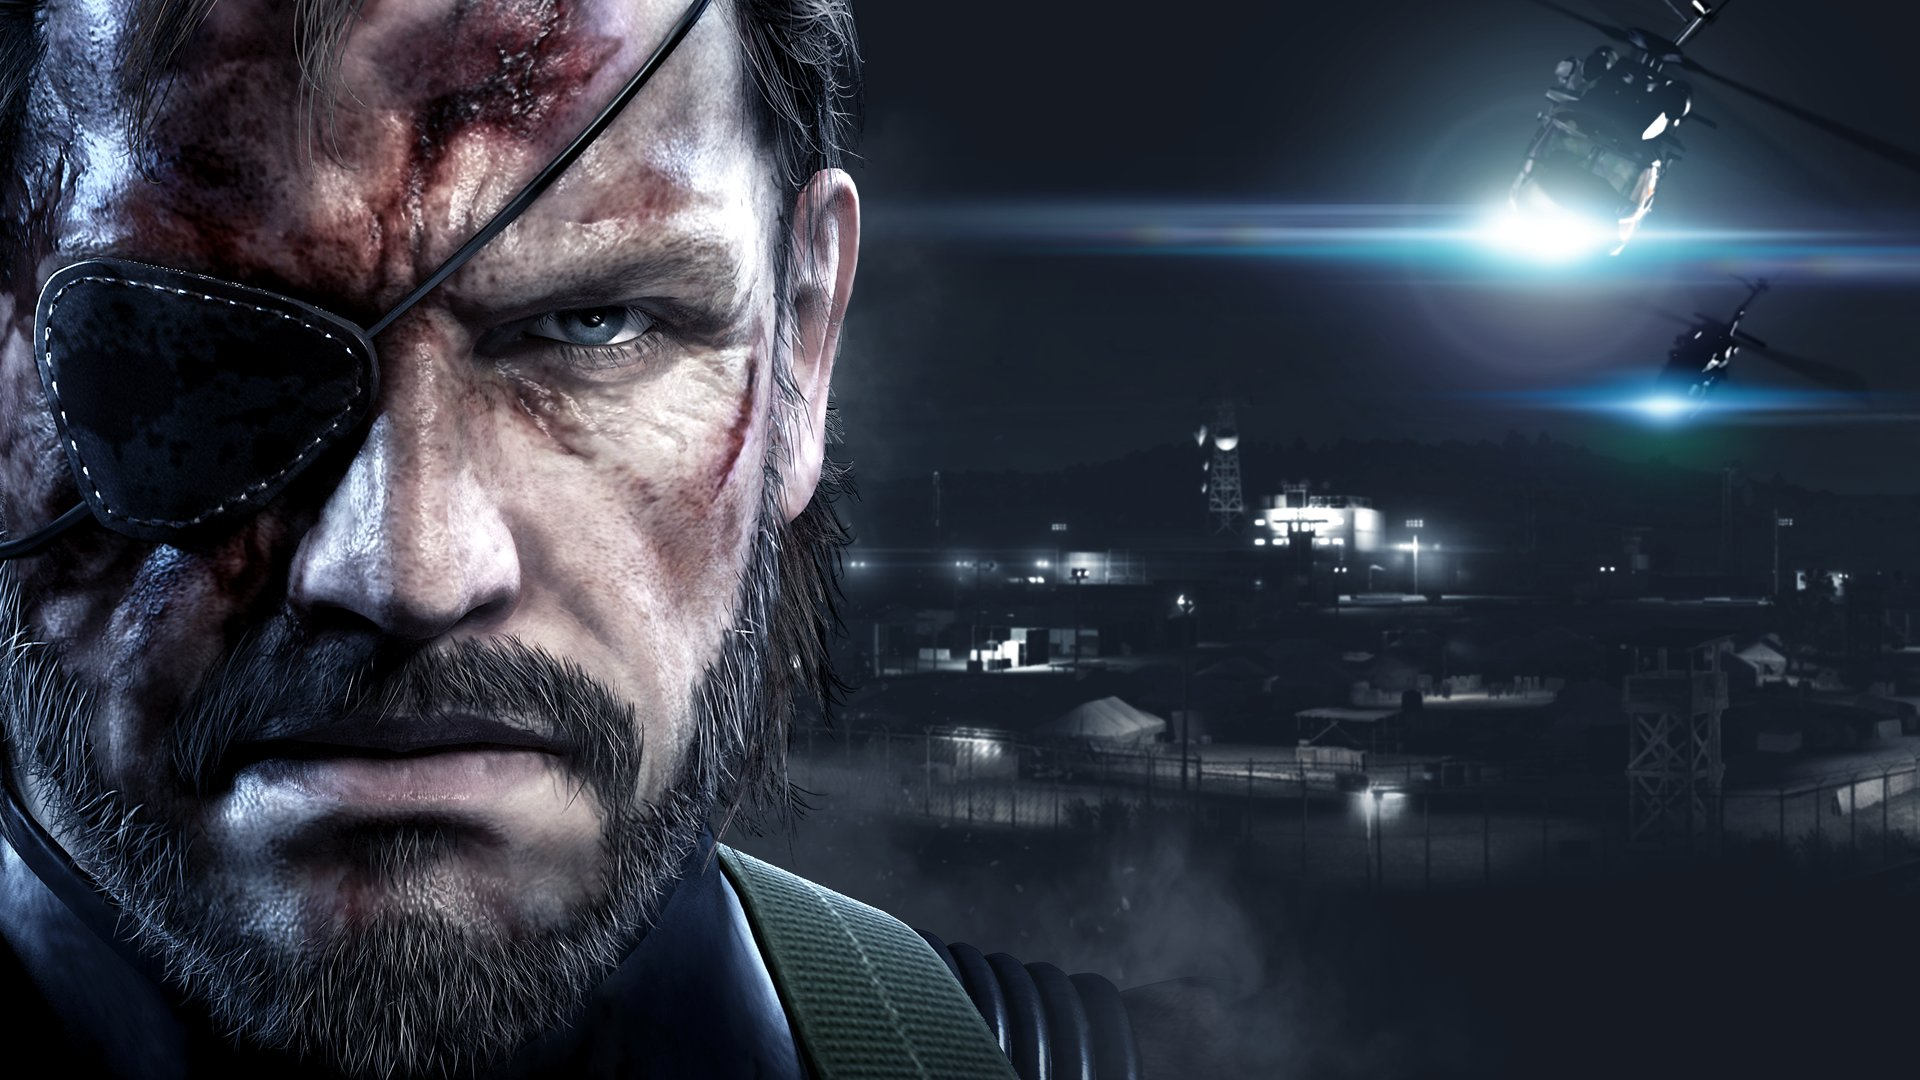 Metal gear solid v ground zeroes wallpaper 1920x1080 304508 wallpaperup - Mgs 5 wallpaper ...